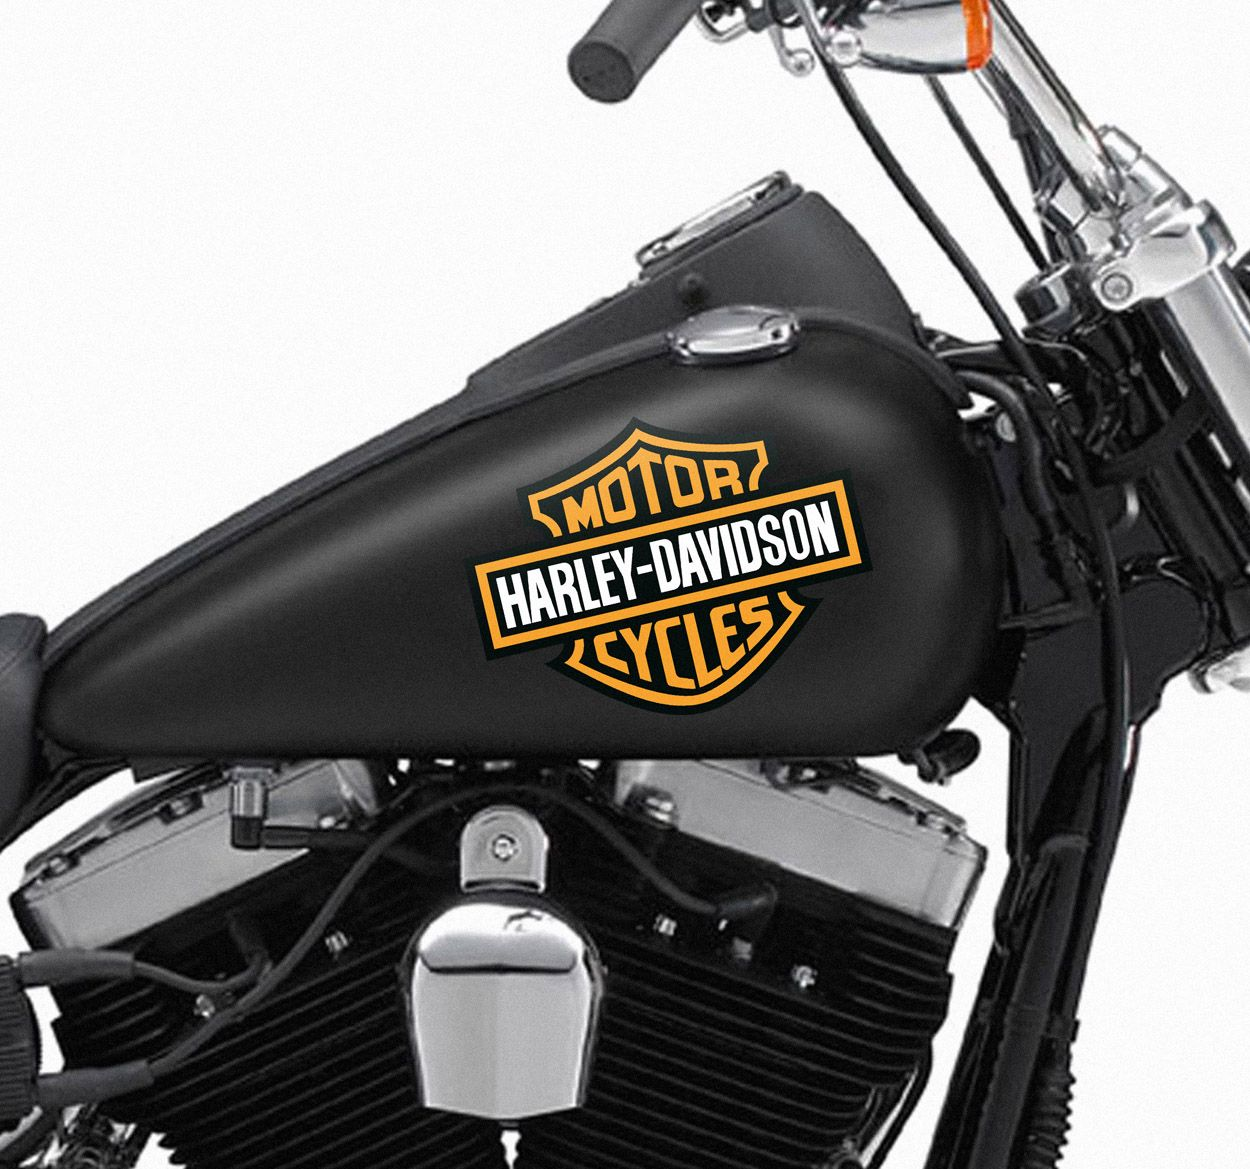 A Great Sticker Of The Harley Davidson Logo To Decorate Your - Stickers for motorcycles harley davidsons